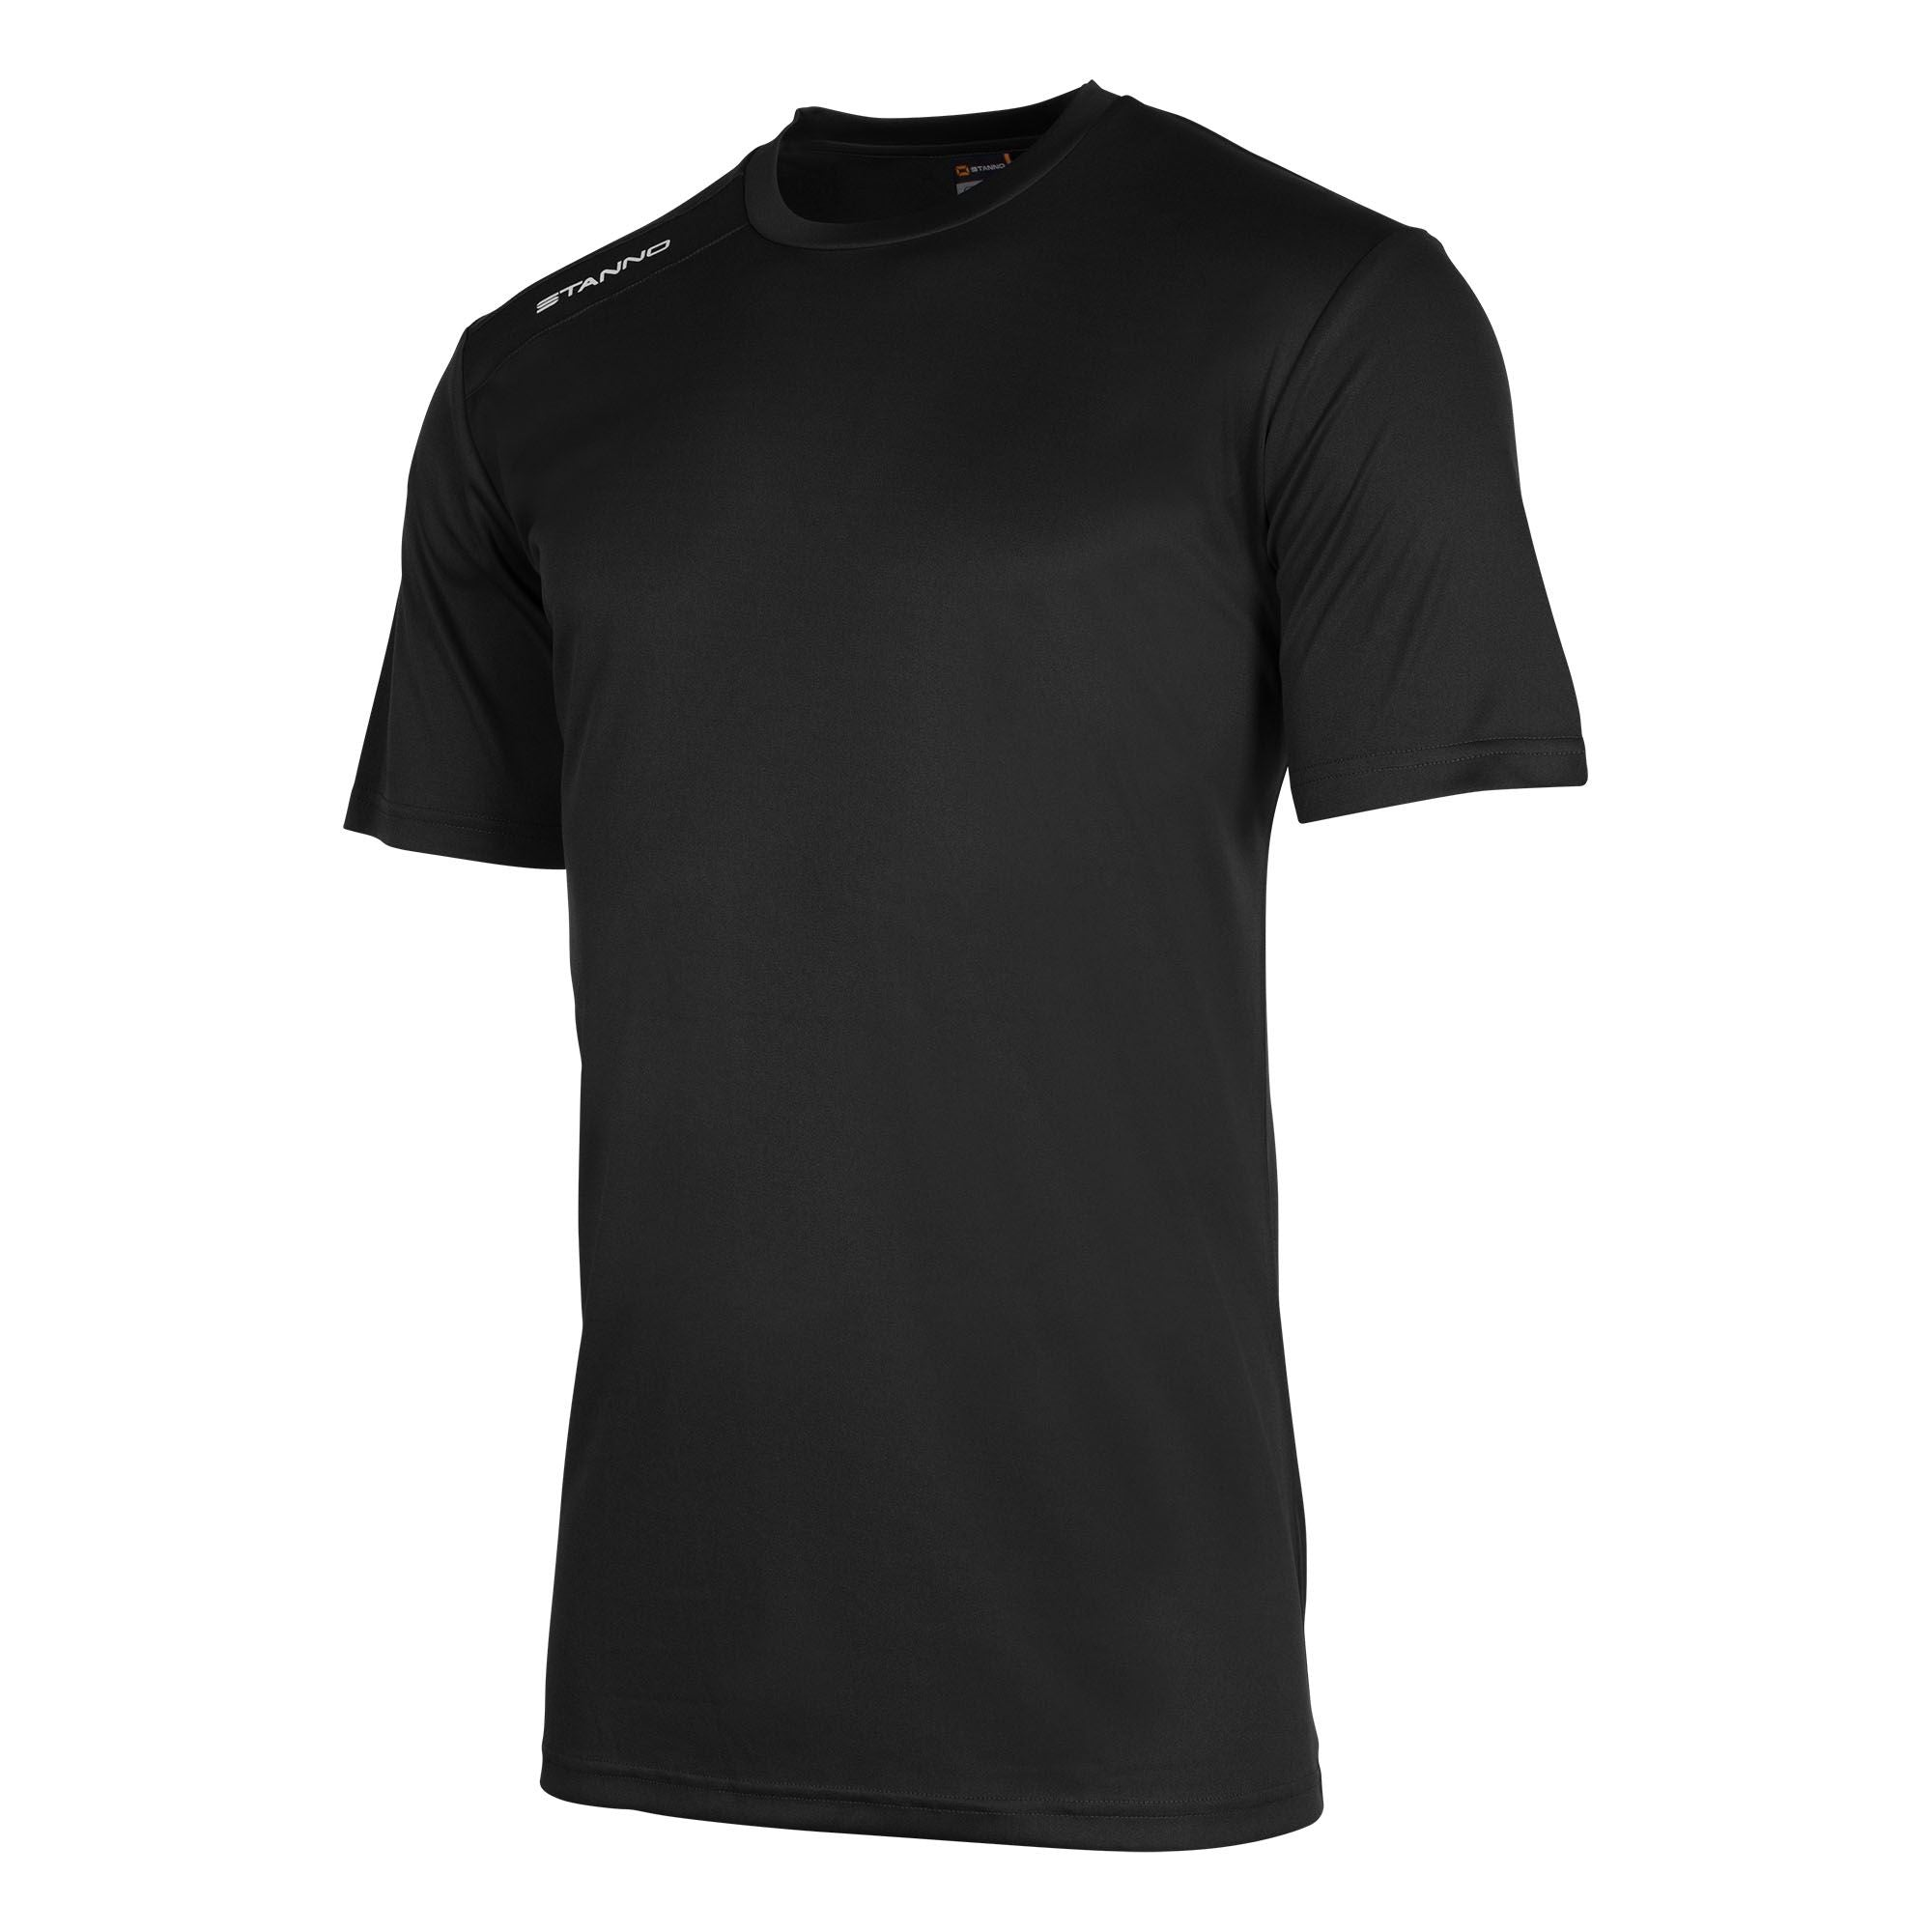 Front of Stanno Field shirt in black short sleeve with white text print on right shoulder